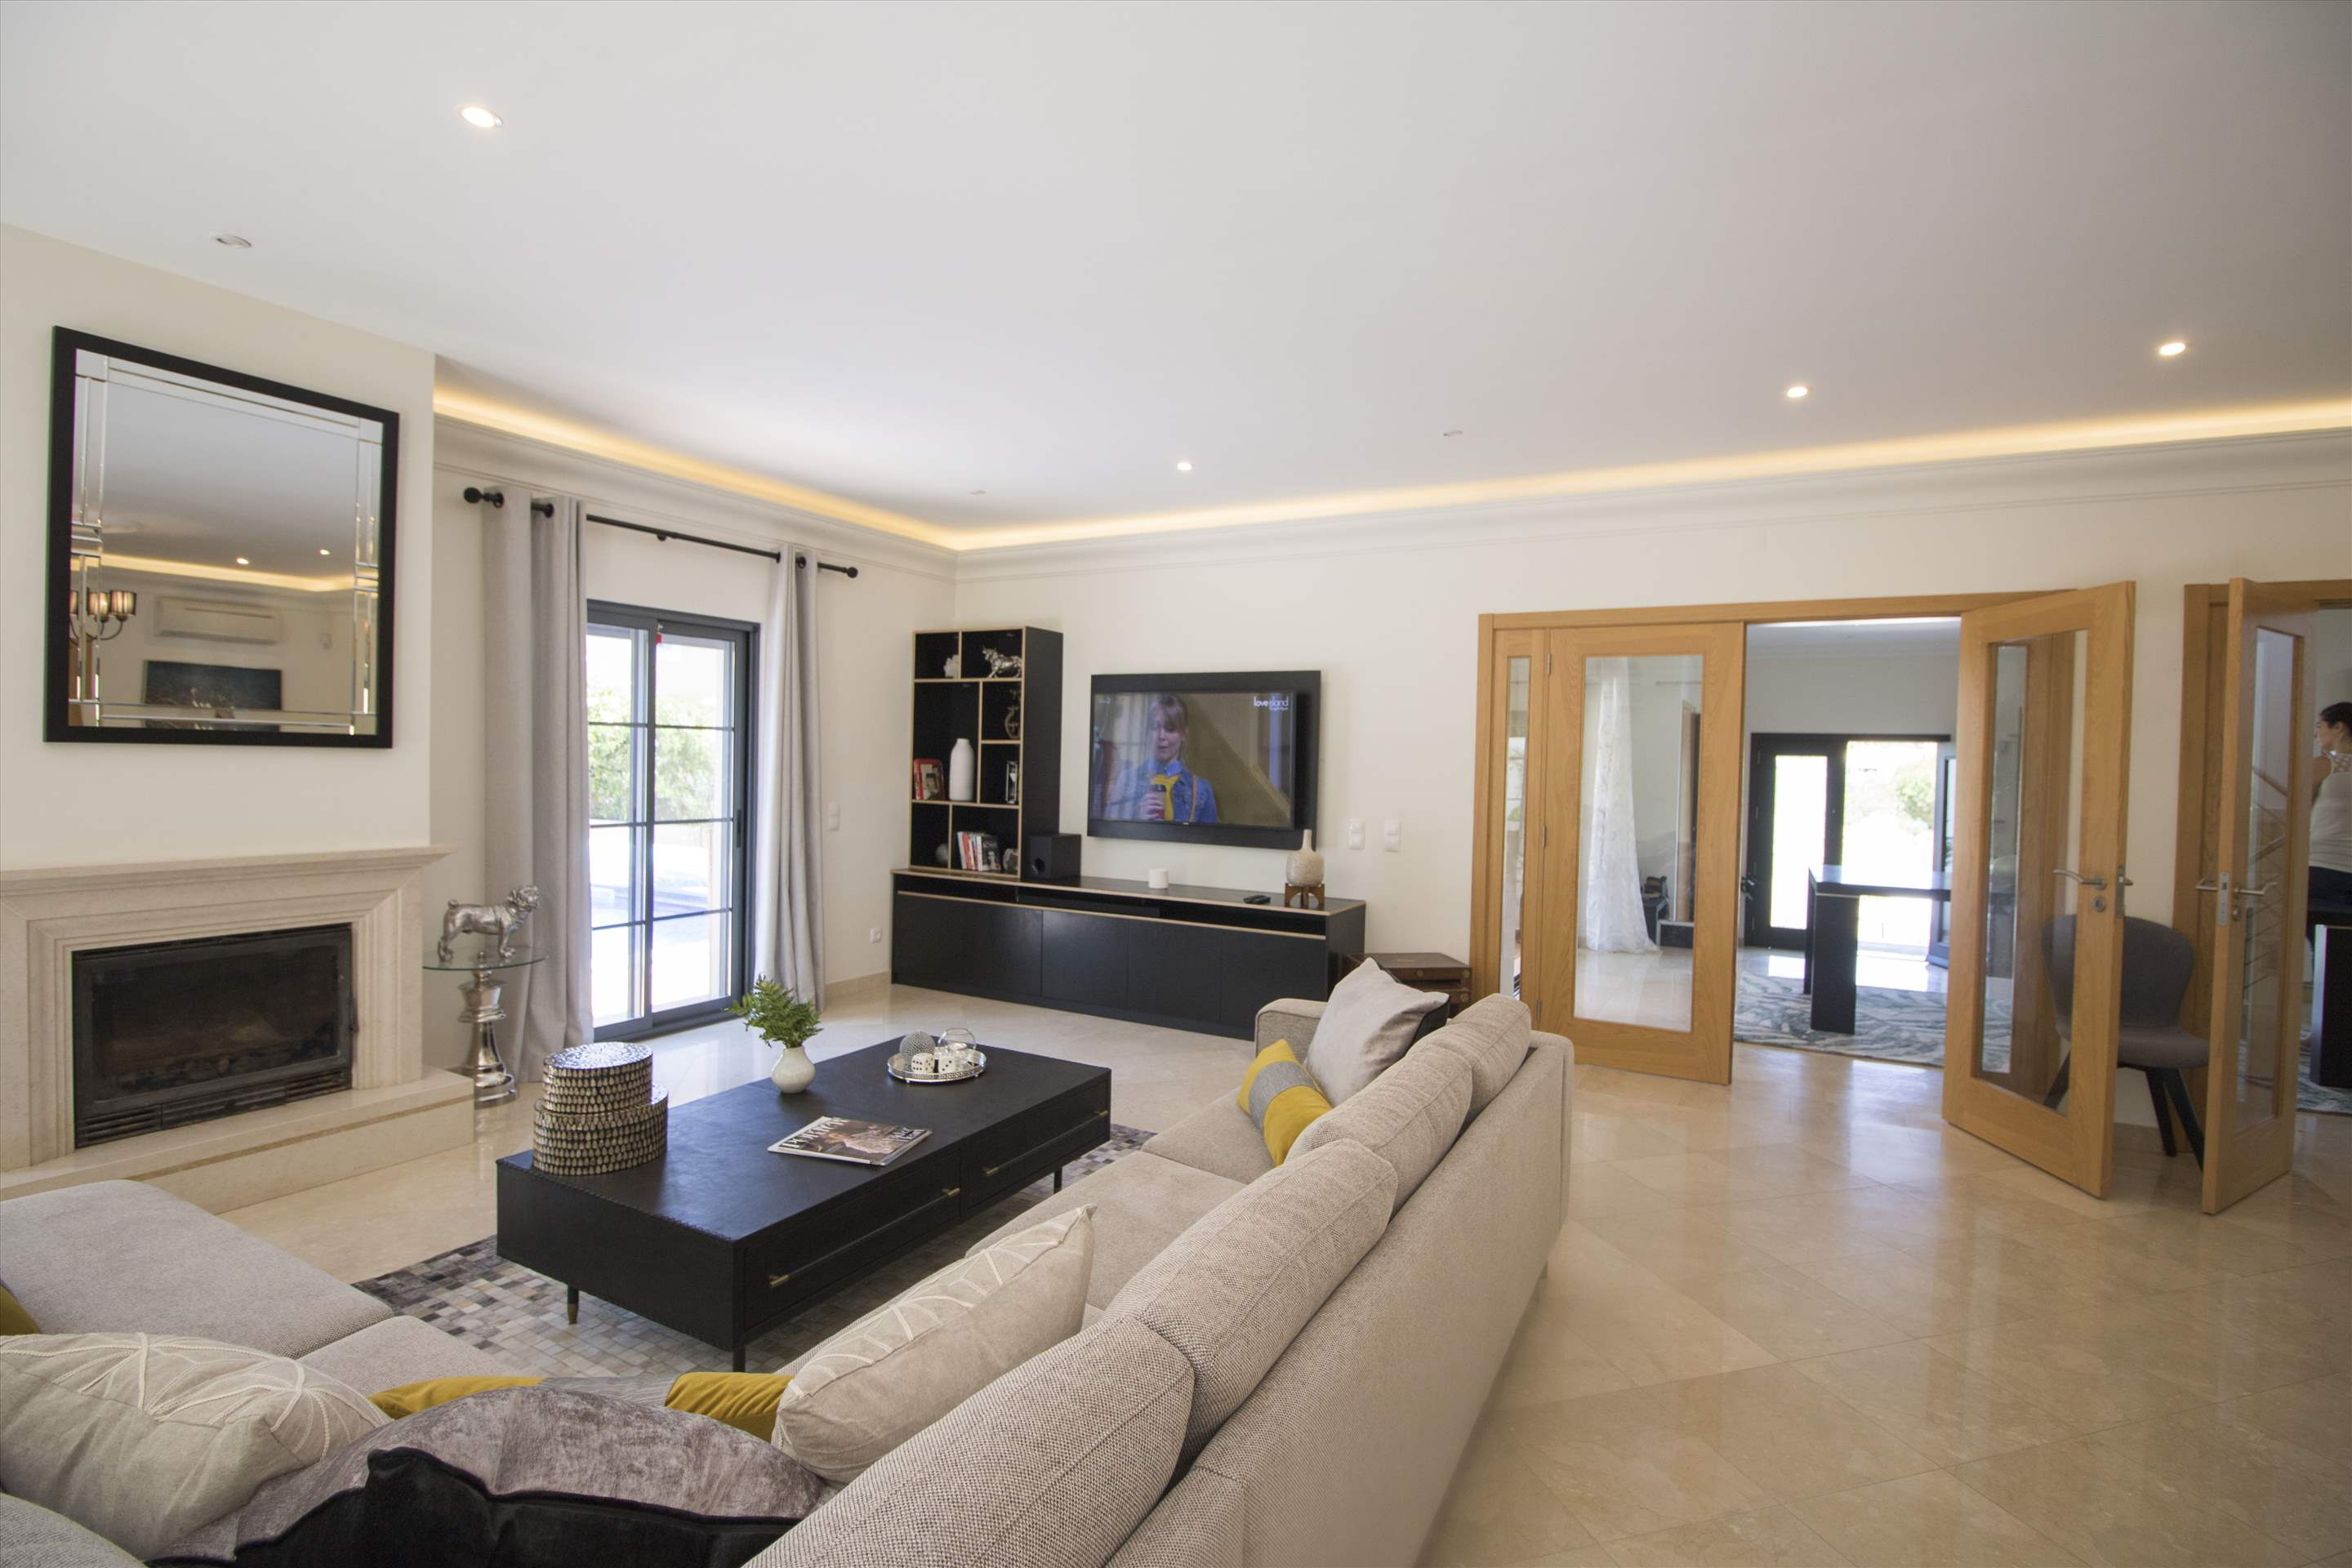 Villa Meryl, 5 bedroom villa in Vale do Lobo, Algarve Photo #5